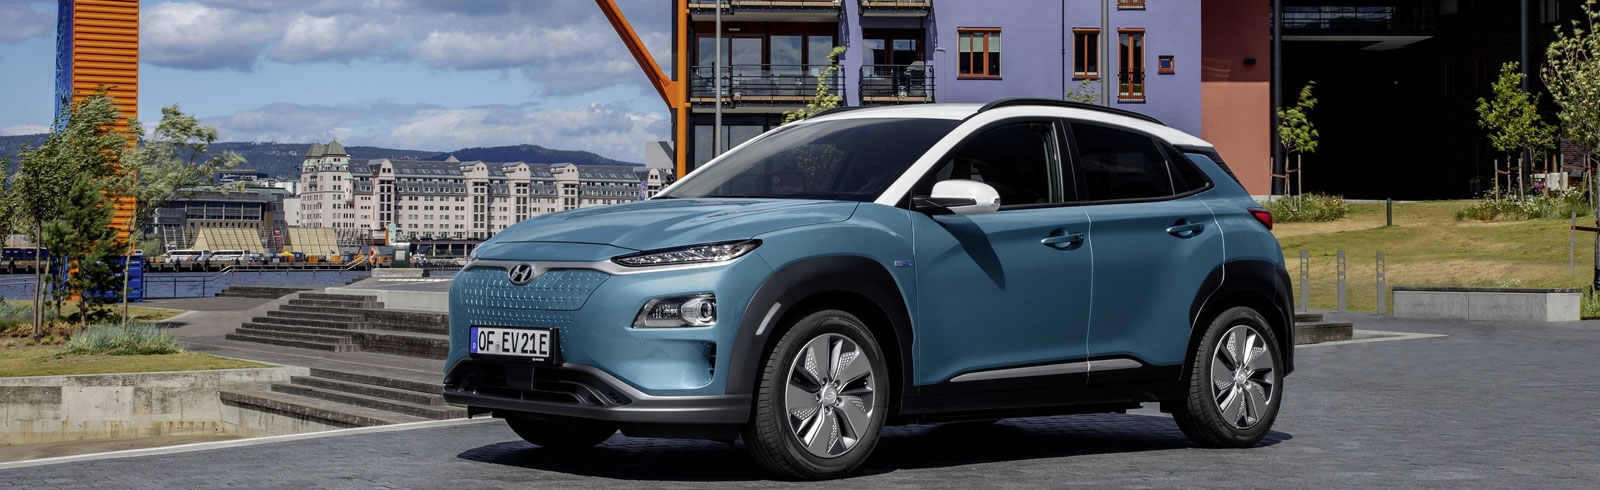 The 2020 Hyundai Kona Electric has received Best Electric Vehicle award from U.S. News & World Report